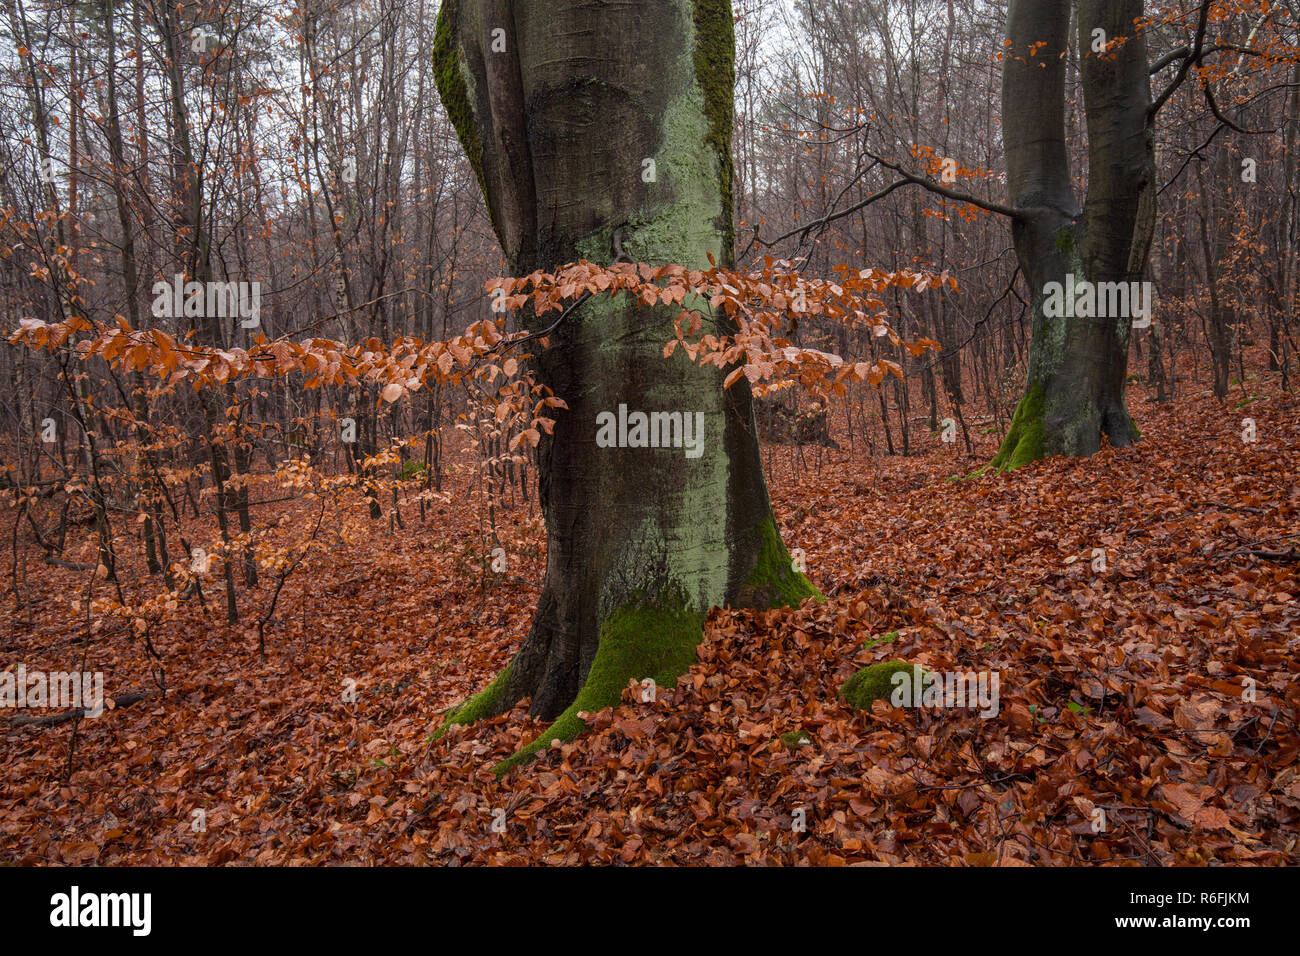 Beech forest in autumn - Stock Image